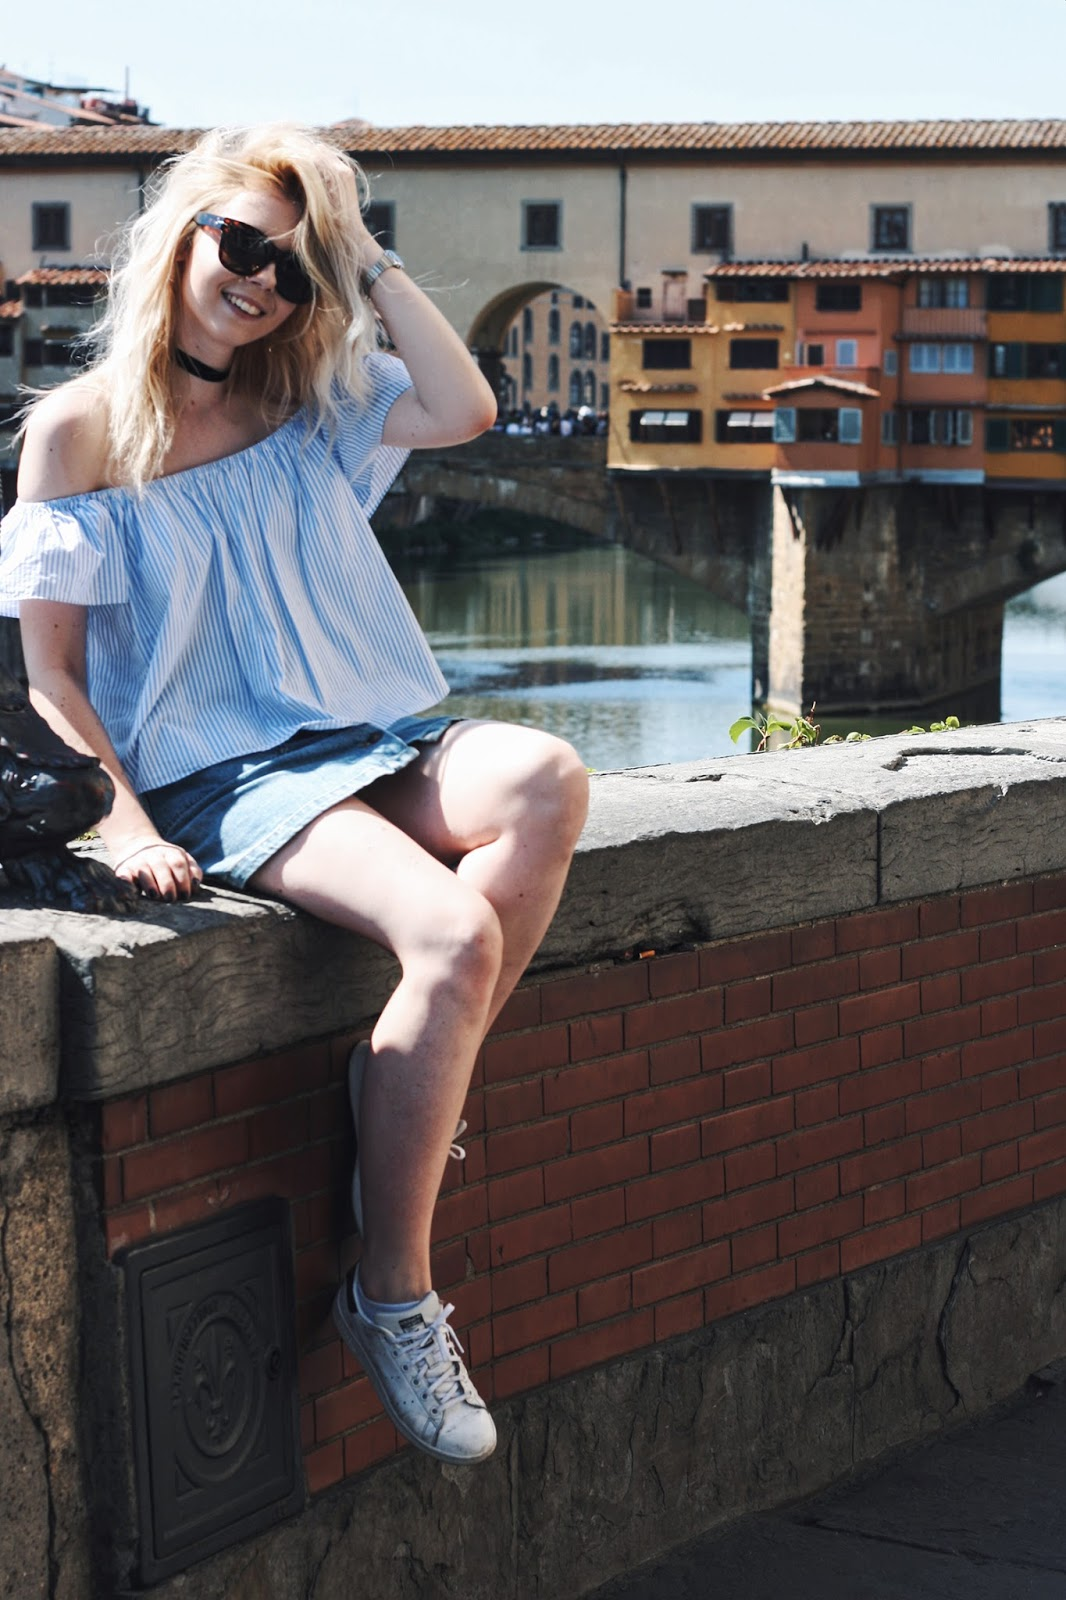 One day in Florence Ponte Vecchio Zara denim skirt off the shoulder top outfit